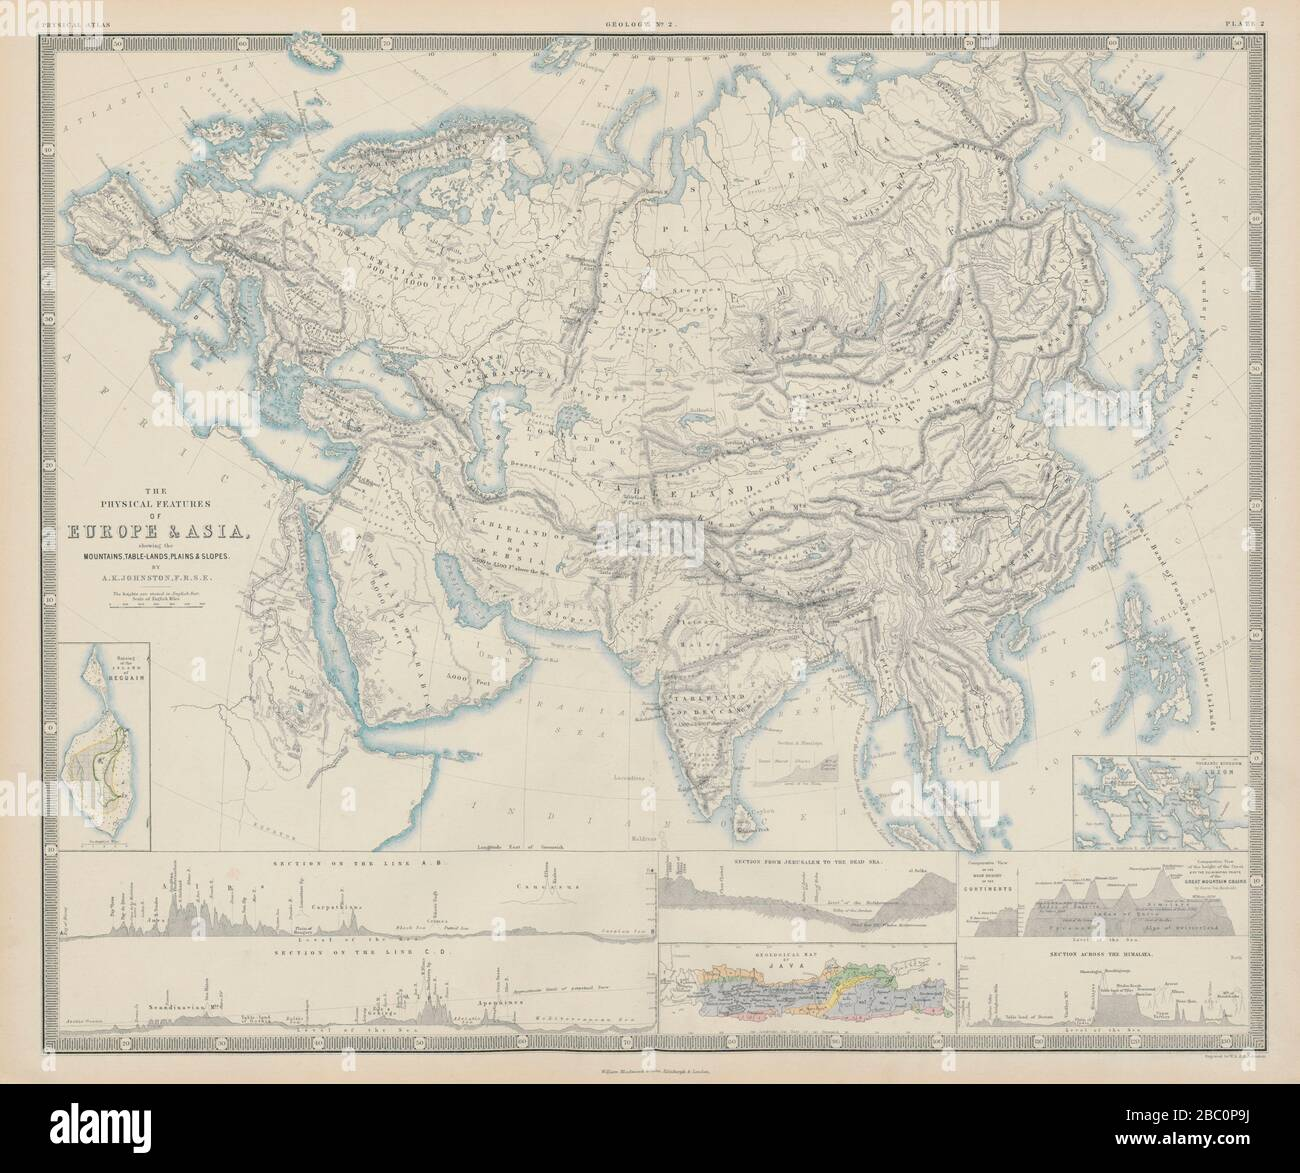 Image of: The Physical Features Of Europe And Asia Mountains Rivers Sections 1856 Map Stock Photo Alamy